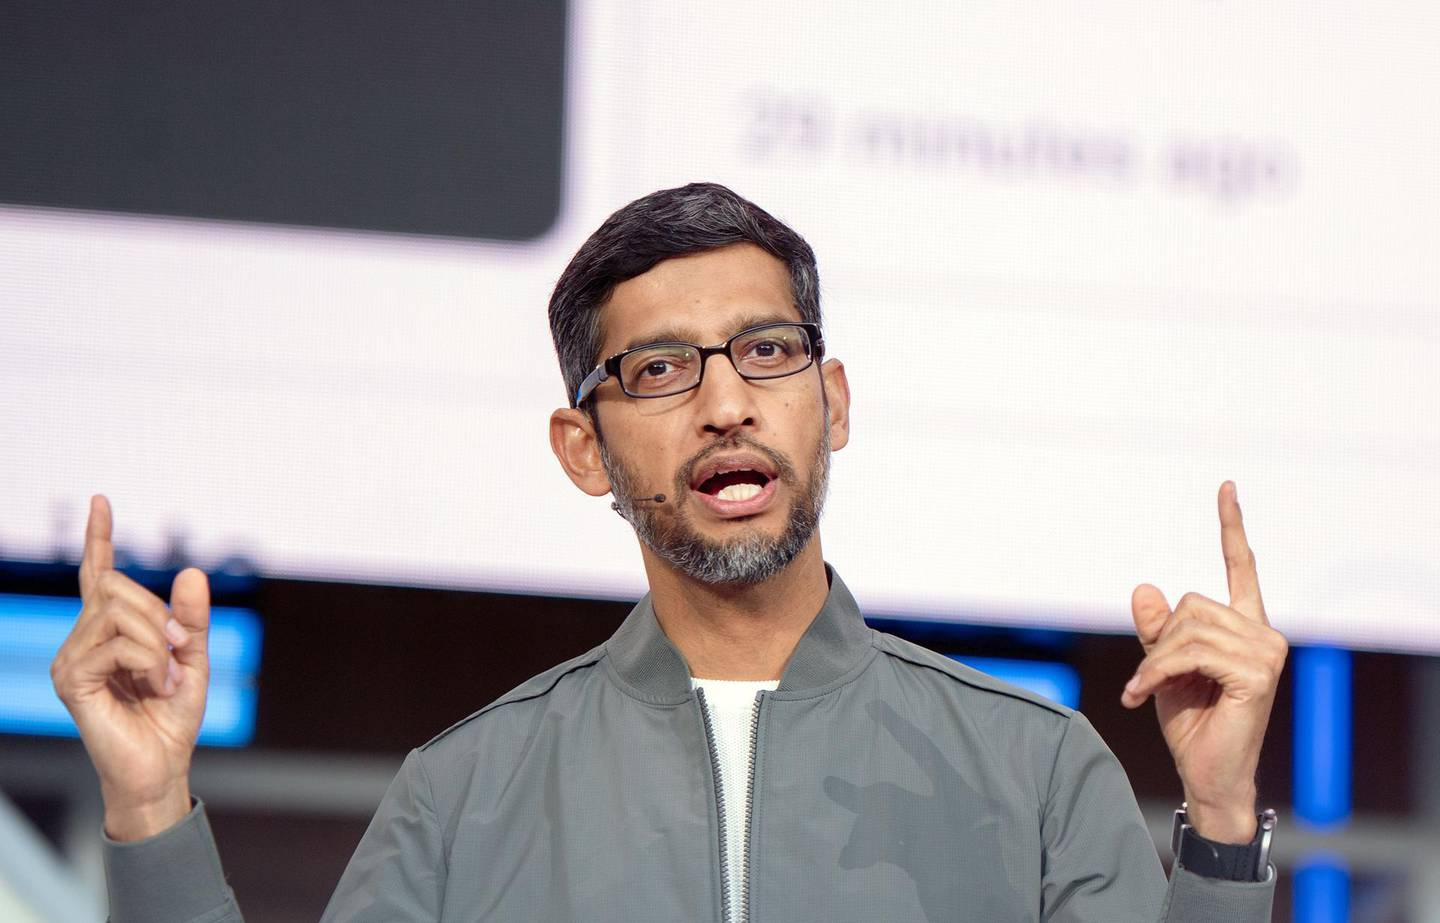 (FILES) In this file photo taken on May 07, 2019 Google CEO Sundar Pichai speaks during the Google I/O 2019 keynote session at Shoreline Amphitheatre in Mountain View, California .  Google parent Alphabet boosted the salary of newly anointed chief Sundar Pichai and promised more than $200 million in shares if the company hits performance goals, a regulatory filing on December 20, 2019 said. / AFP / Josh Edelson